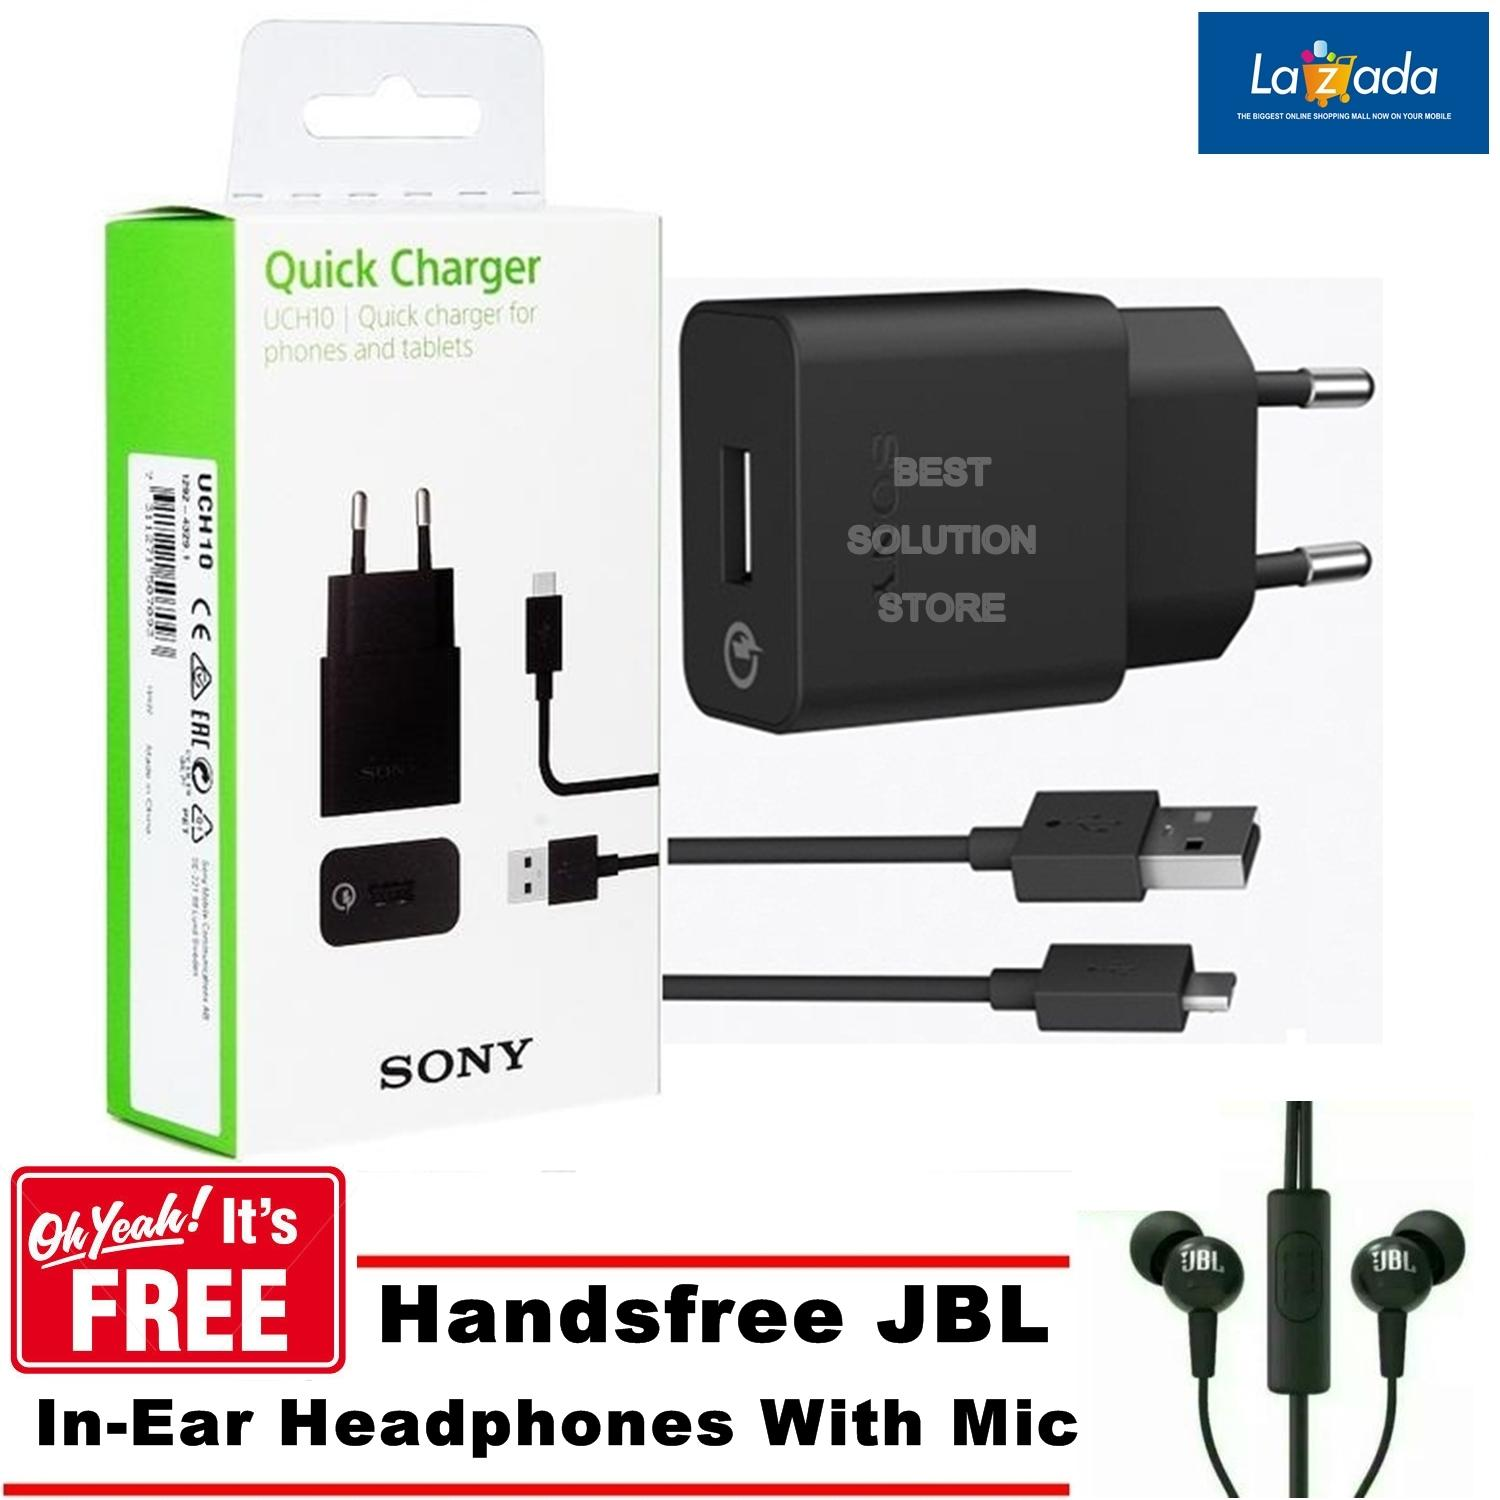 Sony Charger UCH10 Fast Charging Micro USB Qualcomm 2.0 Original For Xperia Z3+ Z4 Z5 +